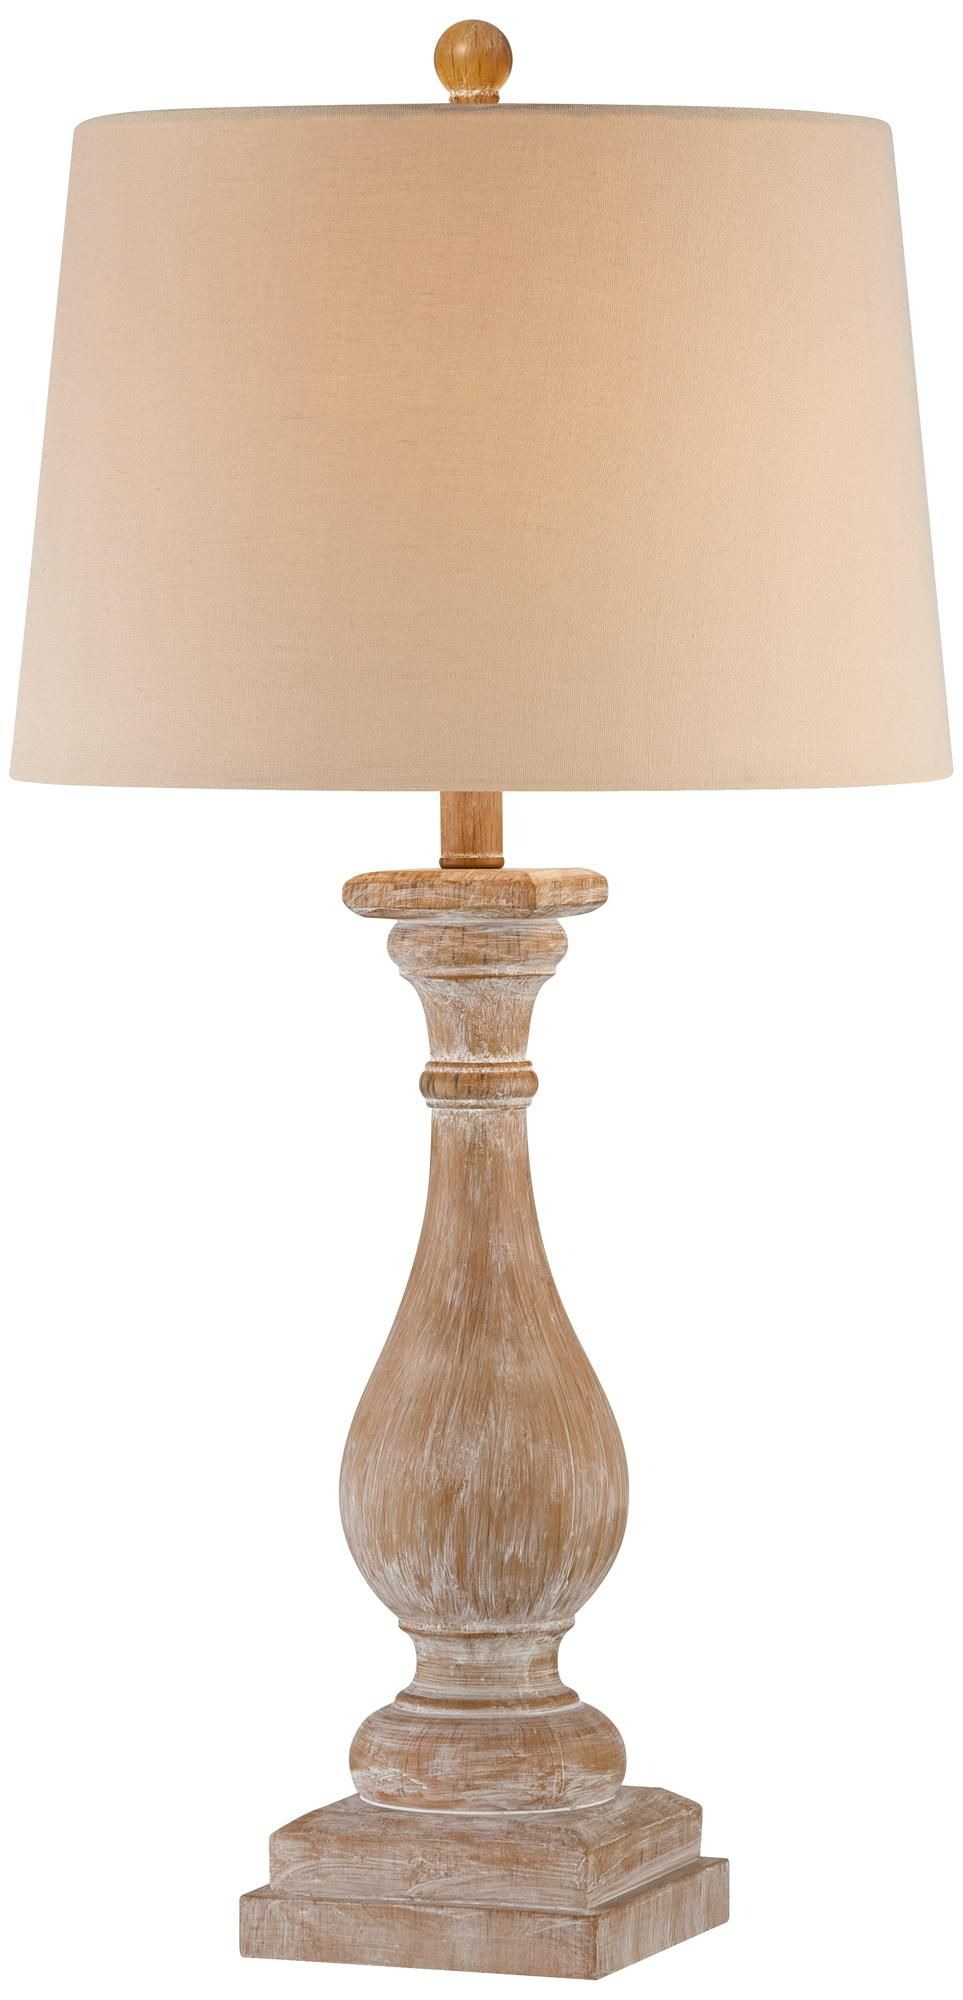 Worn Wood Candlestick Table Lamp